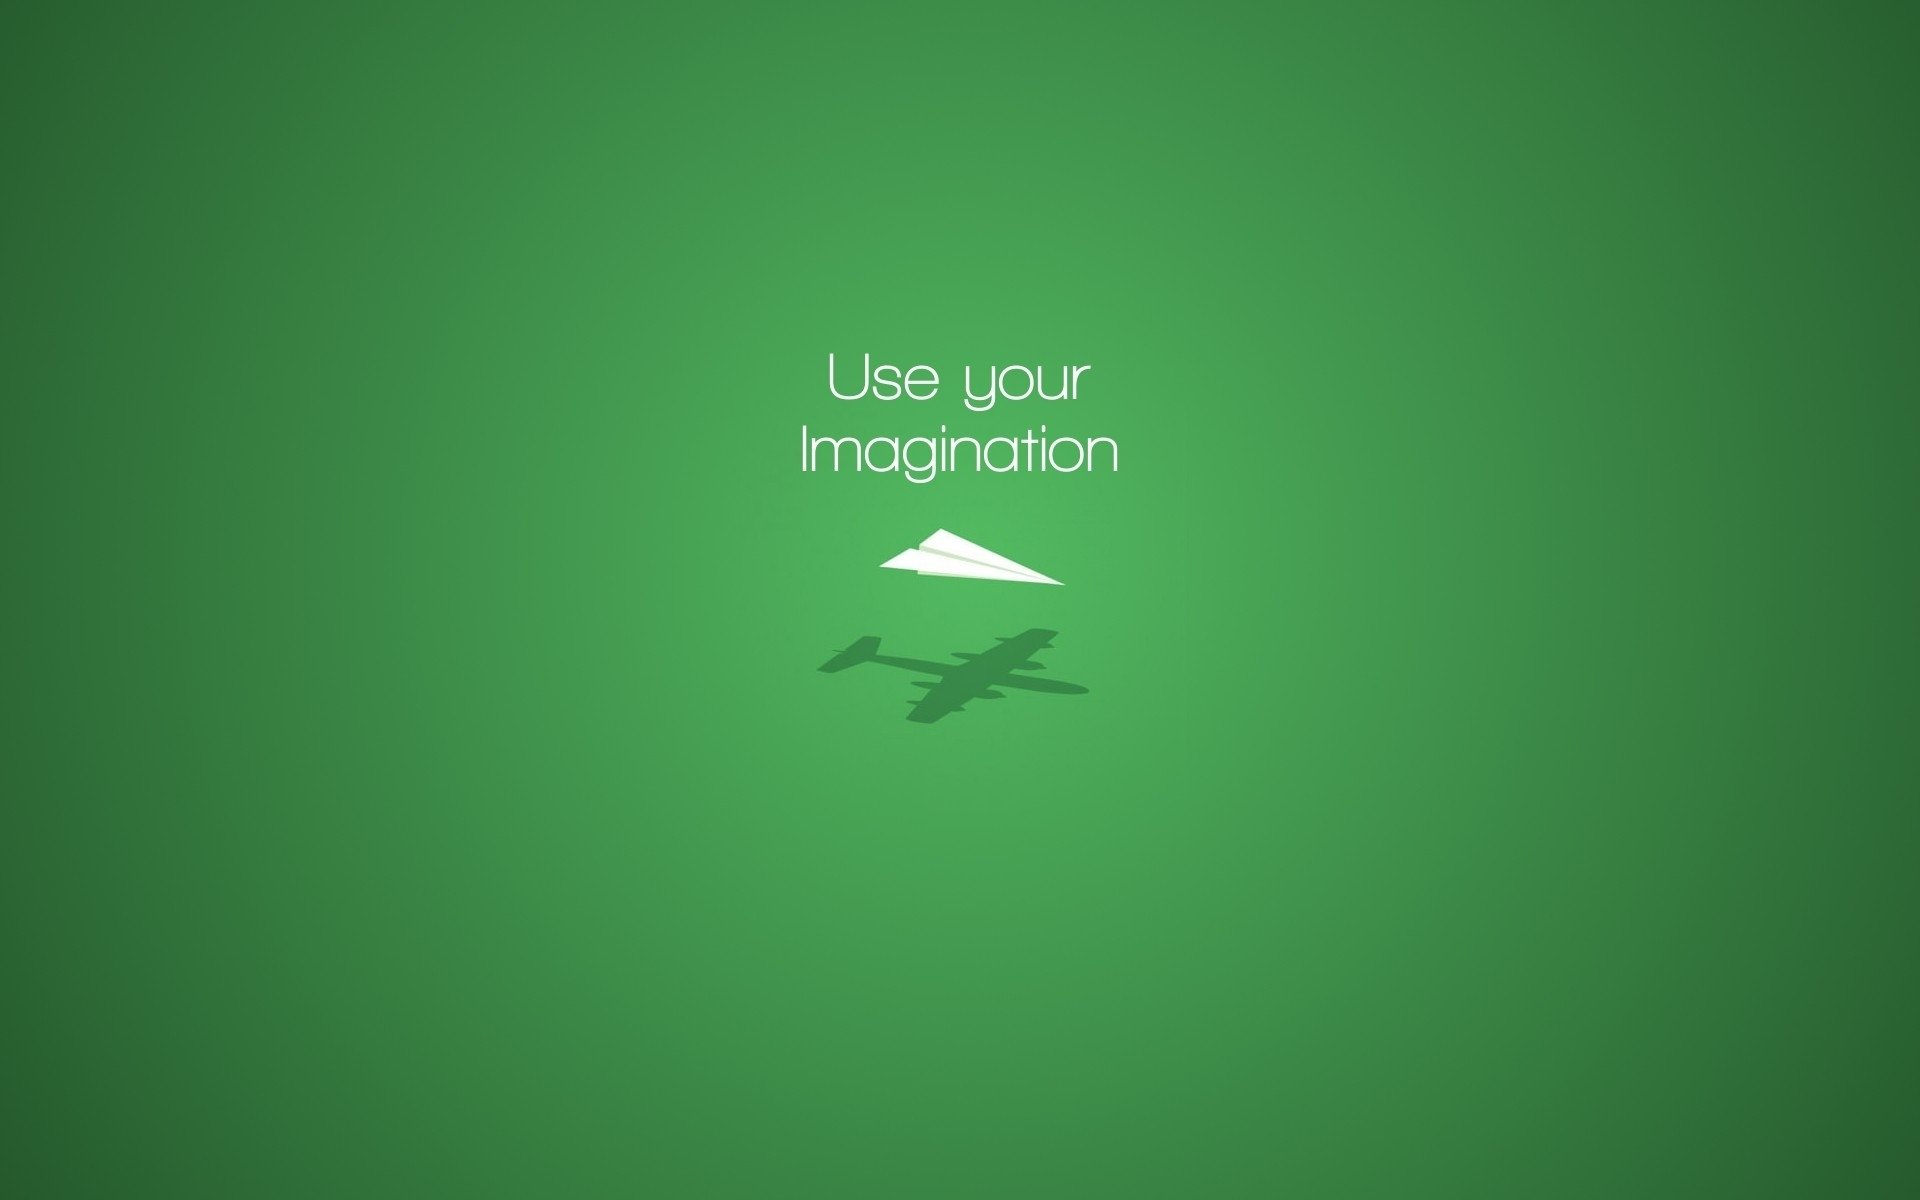 Misc - Motivational  Airplane Green Wallpaper